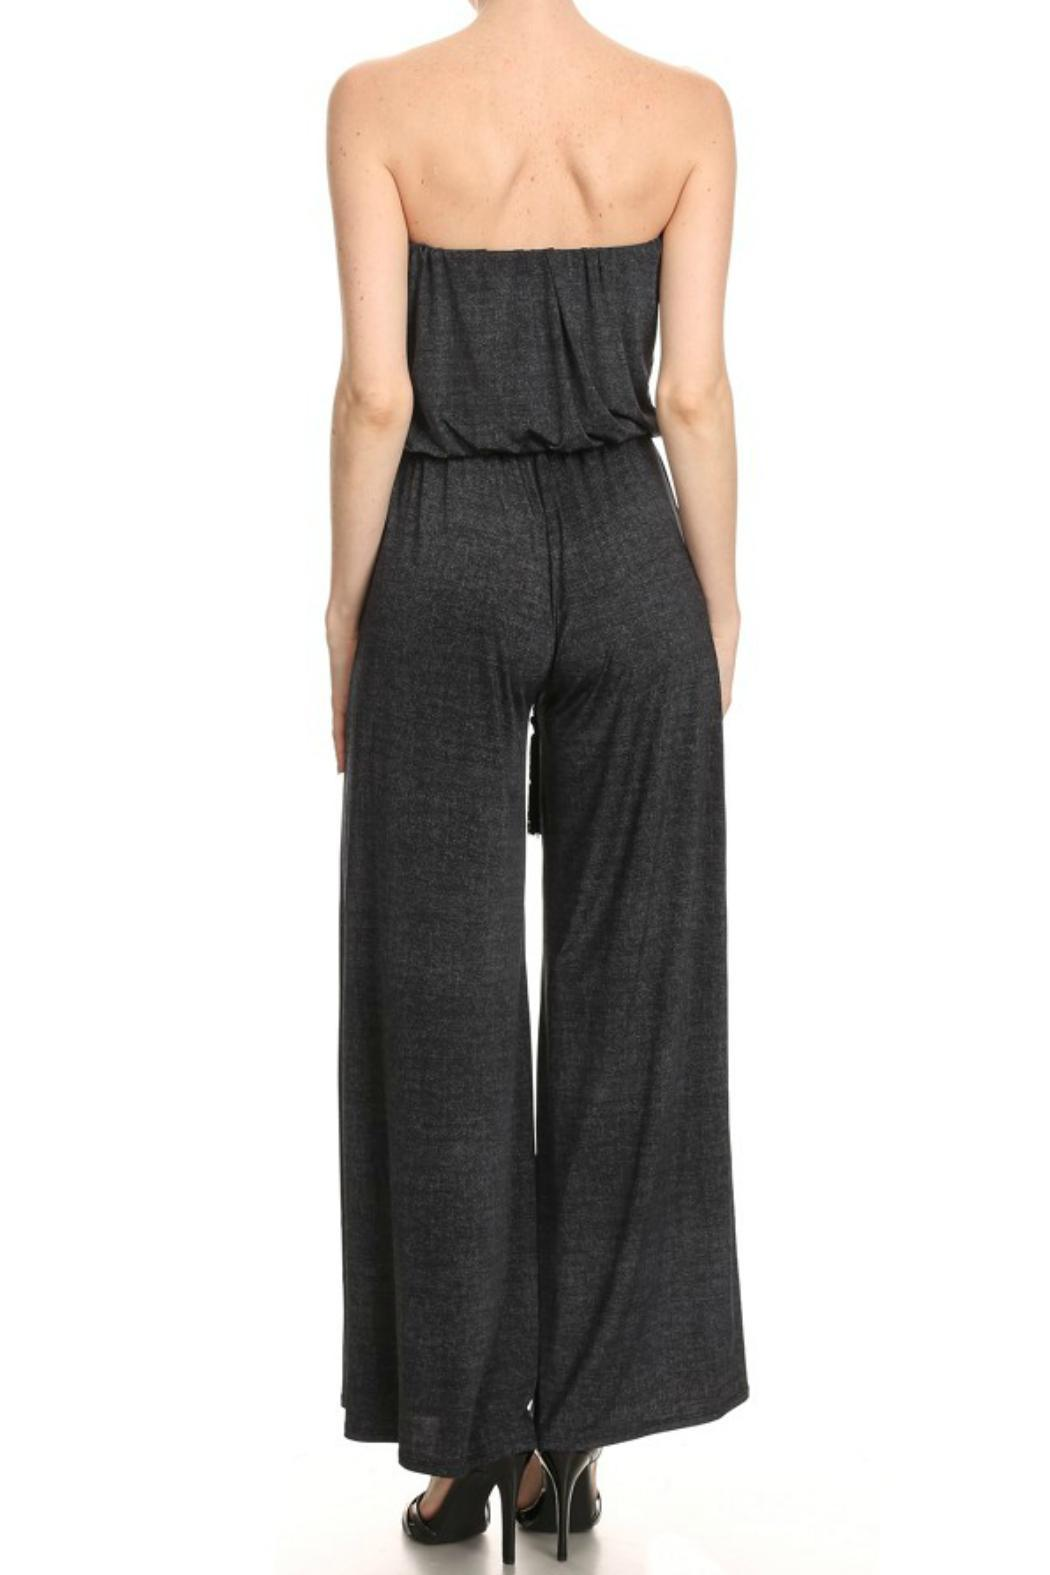 Ariella Strapless Belted Jumpsuit - Front Full Image